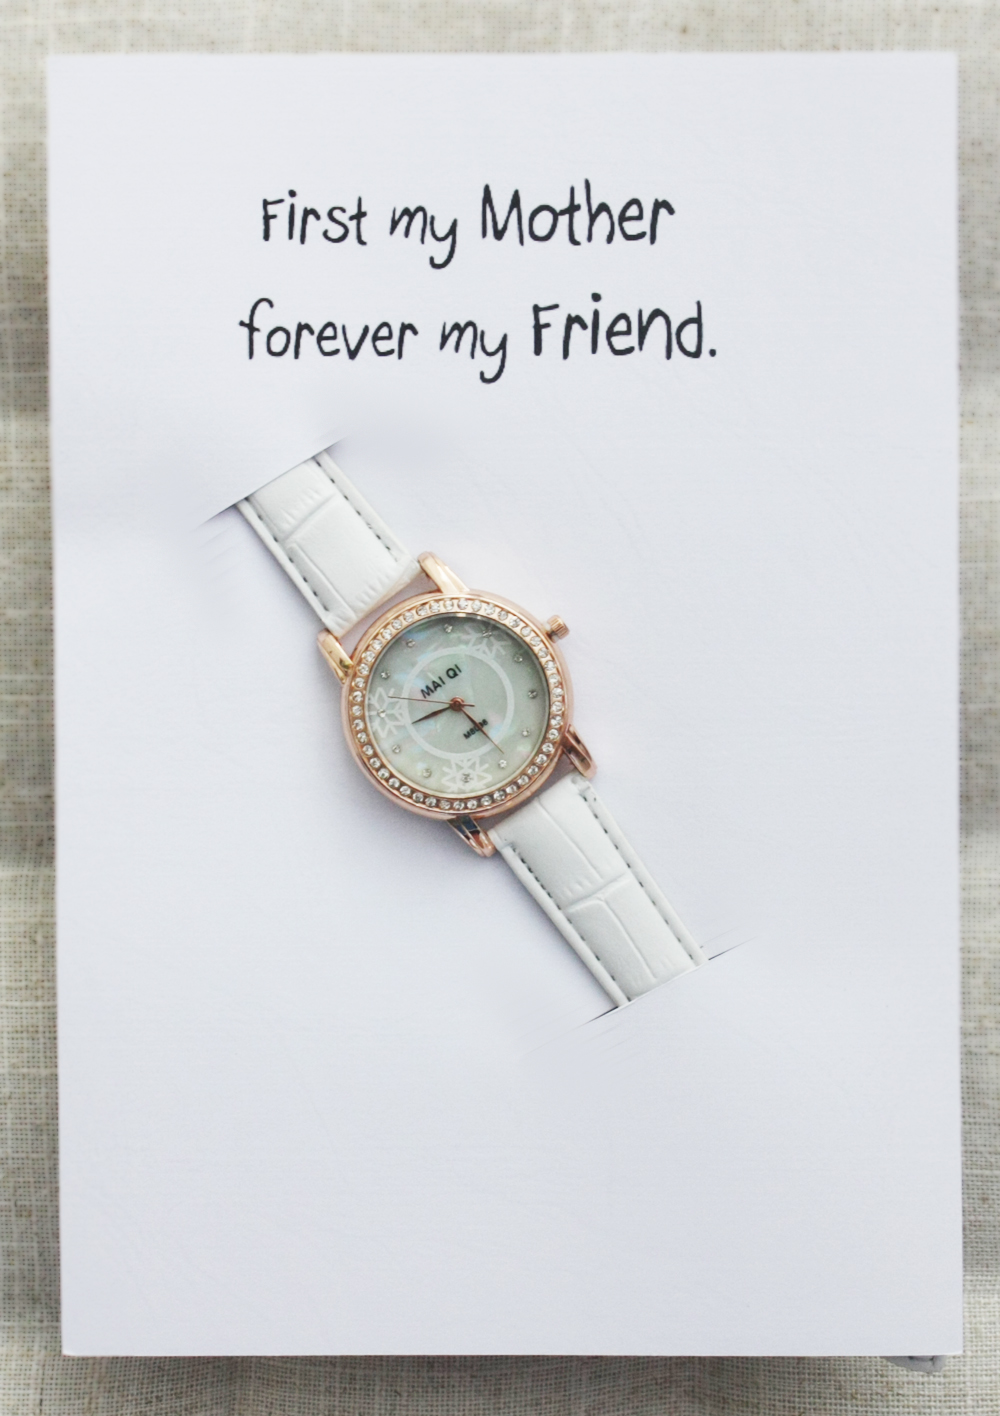 7a2d5124e6e2f First My Mother- Forever my Friend Card Note WristWatch girl woman Gift  Watch